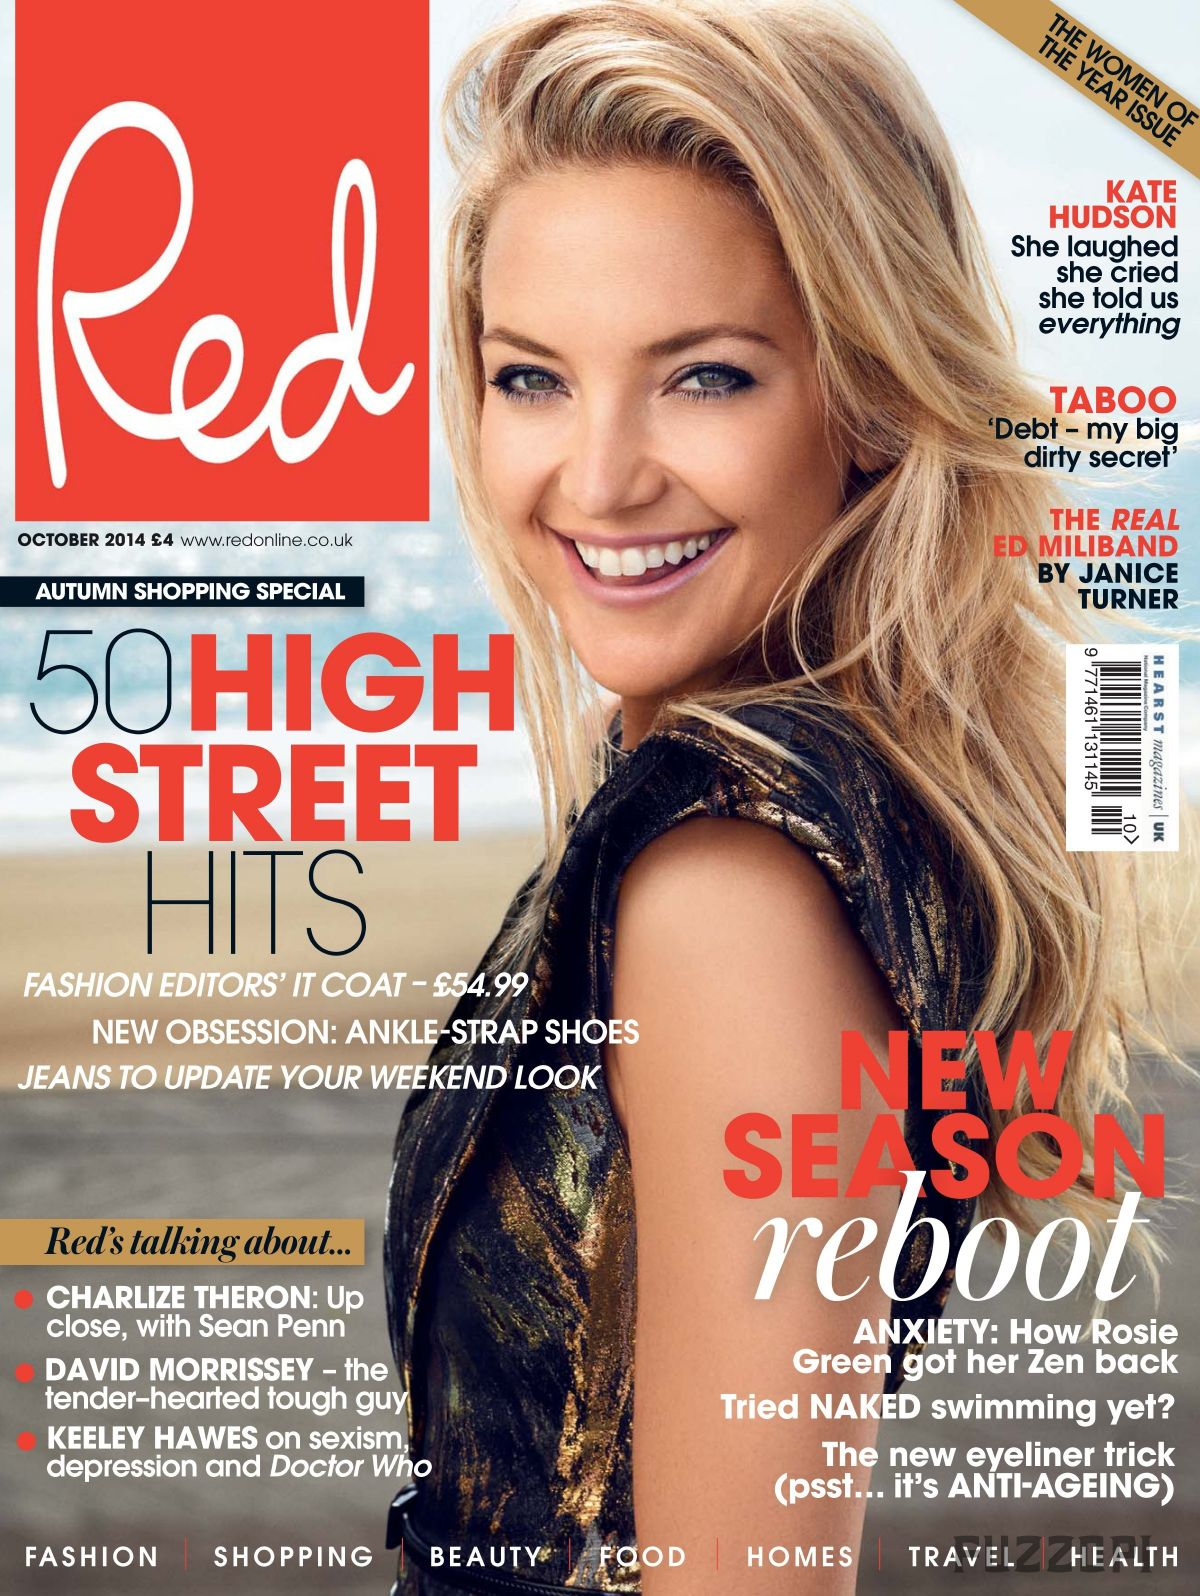 KATE HUDSON on the Cover of Red Magazine, October 2014 Issue